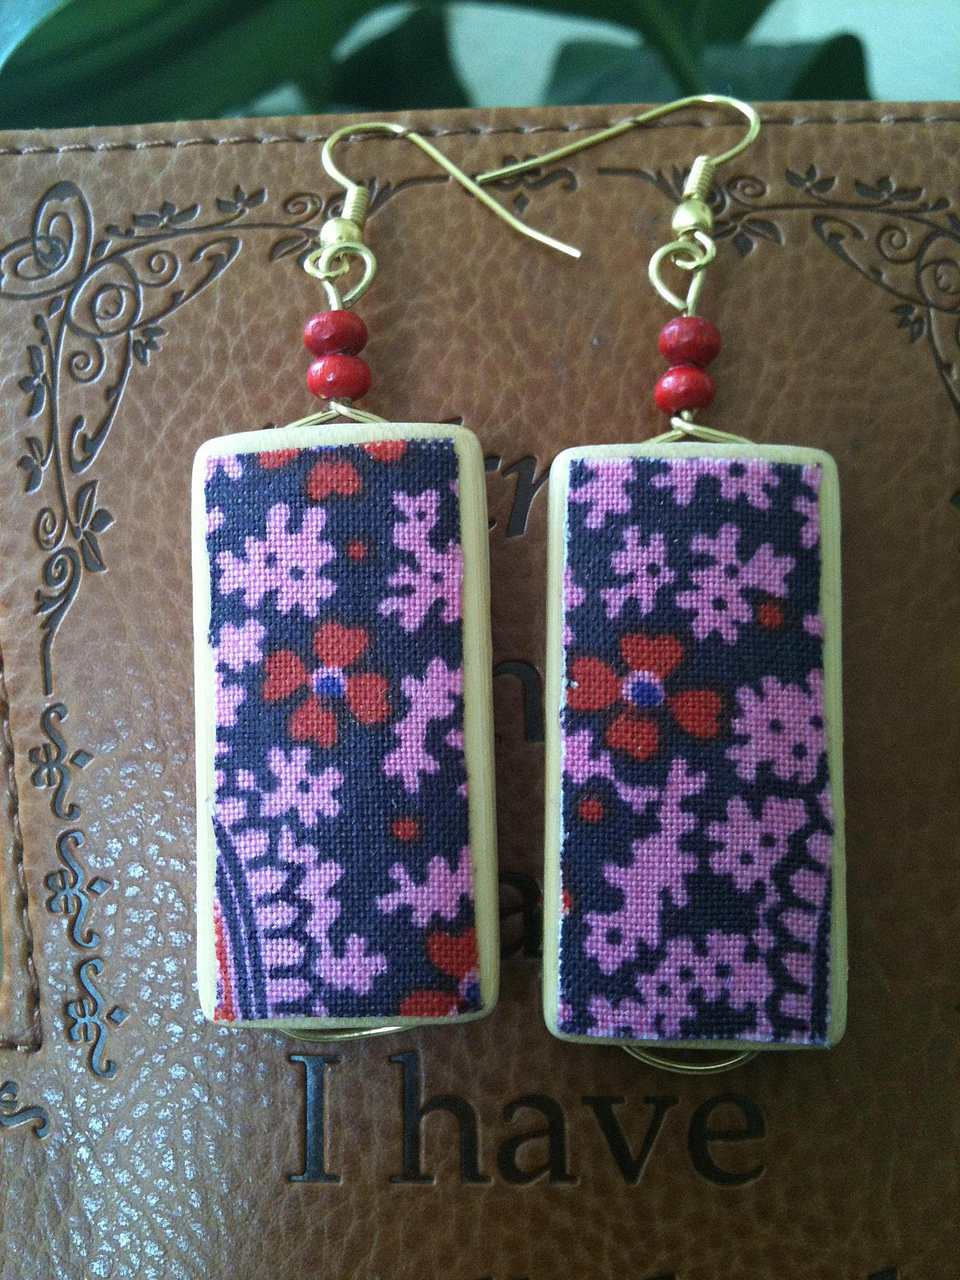 How to Make Fabric Jewelry Using Your Scraps